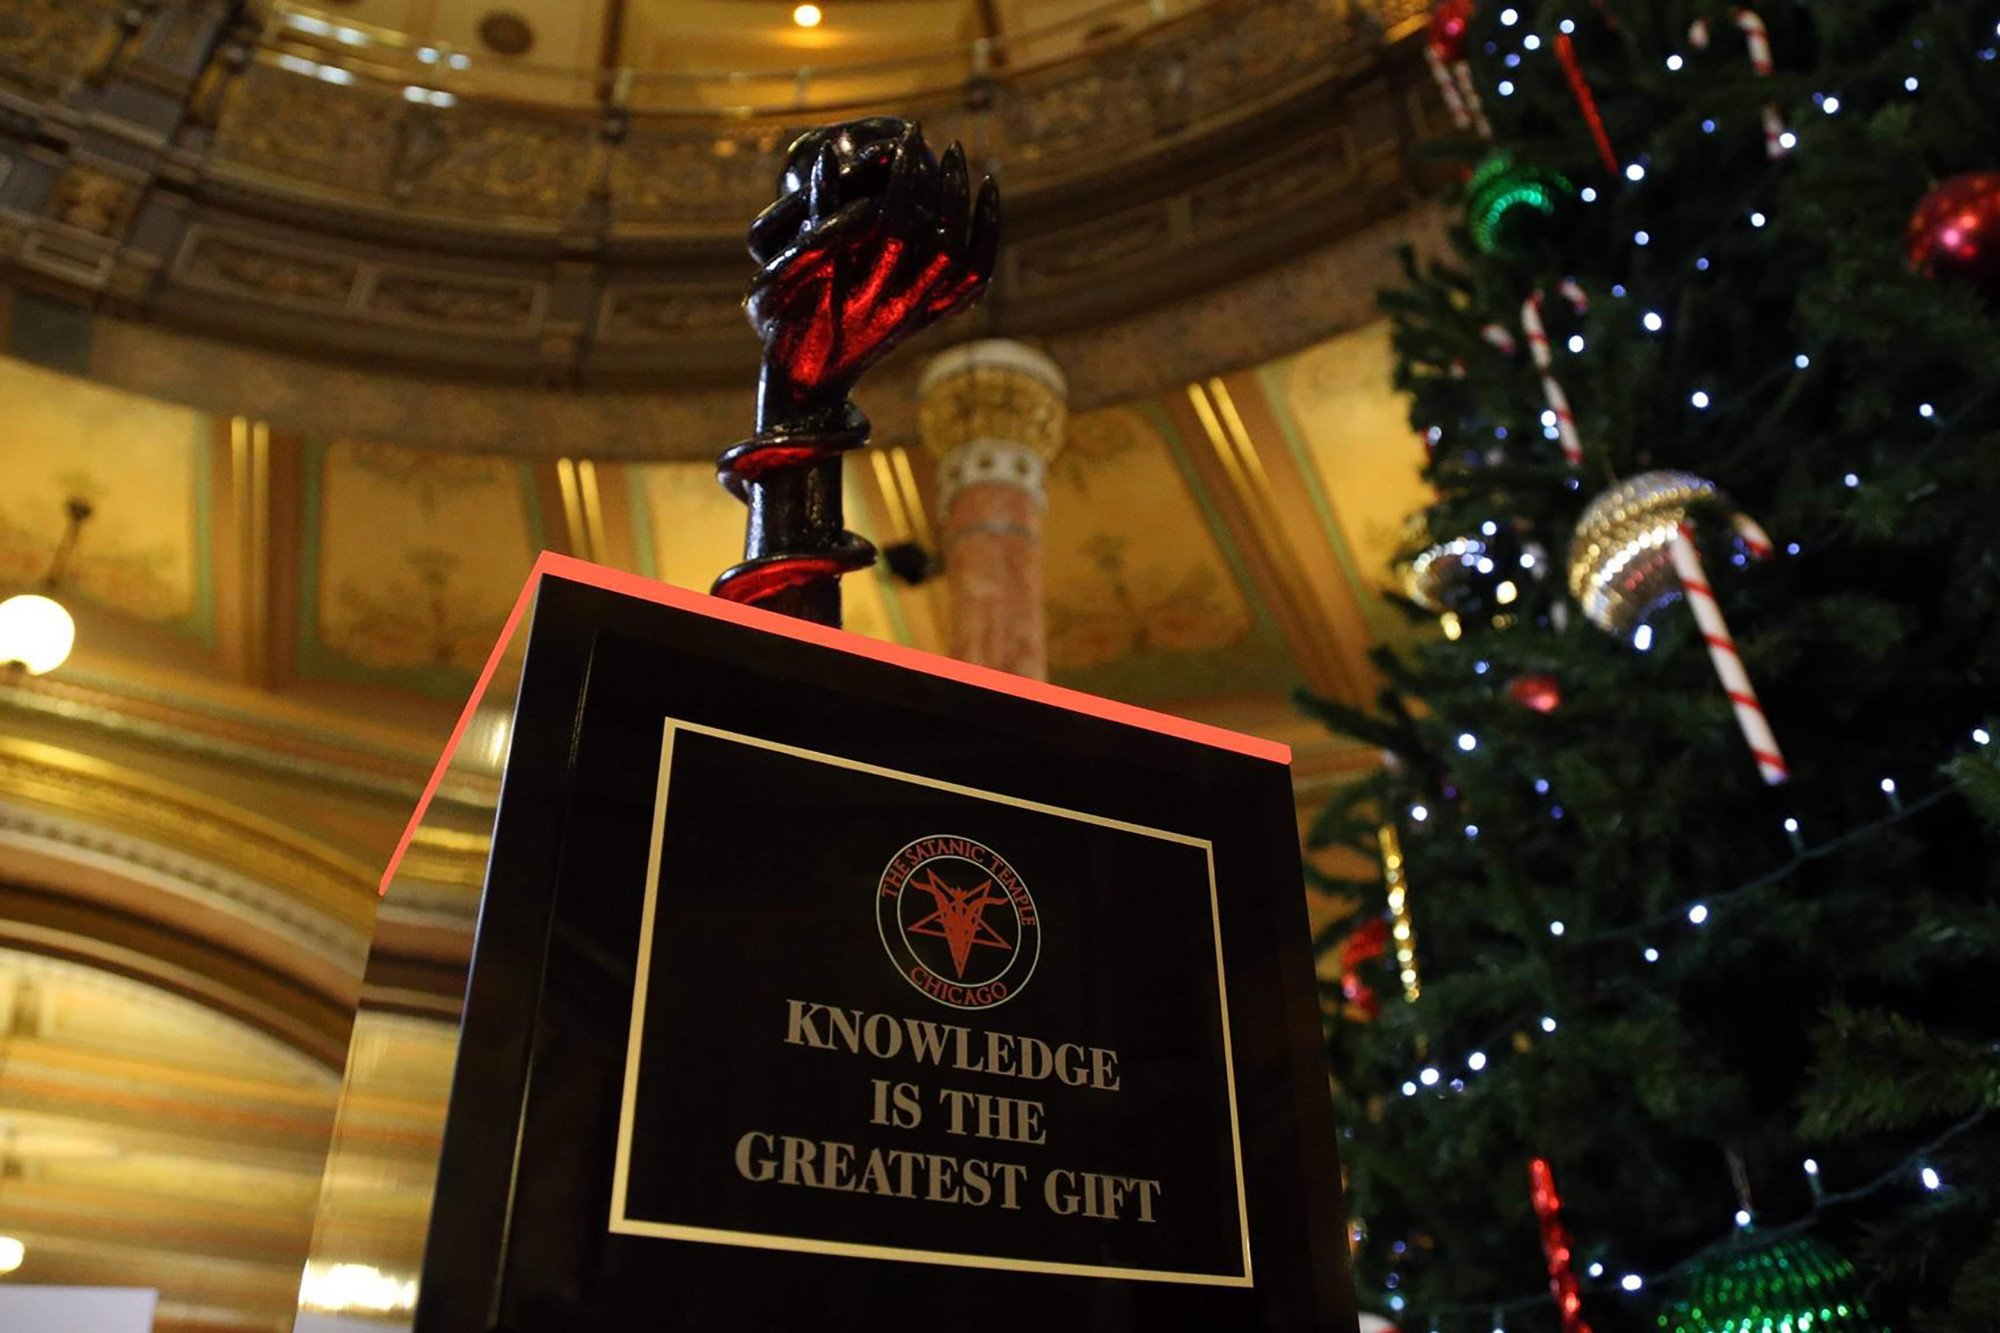 Satanic sculpture causes hell for people at Illinois Statehouse